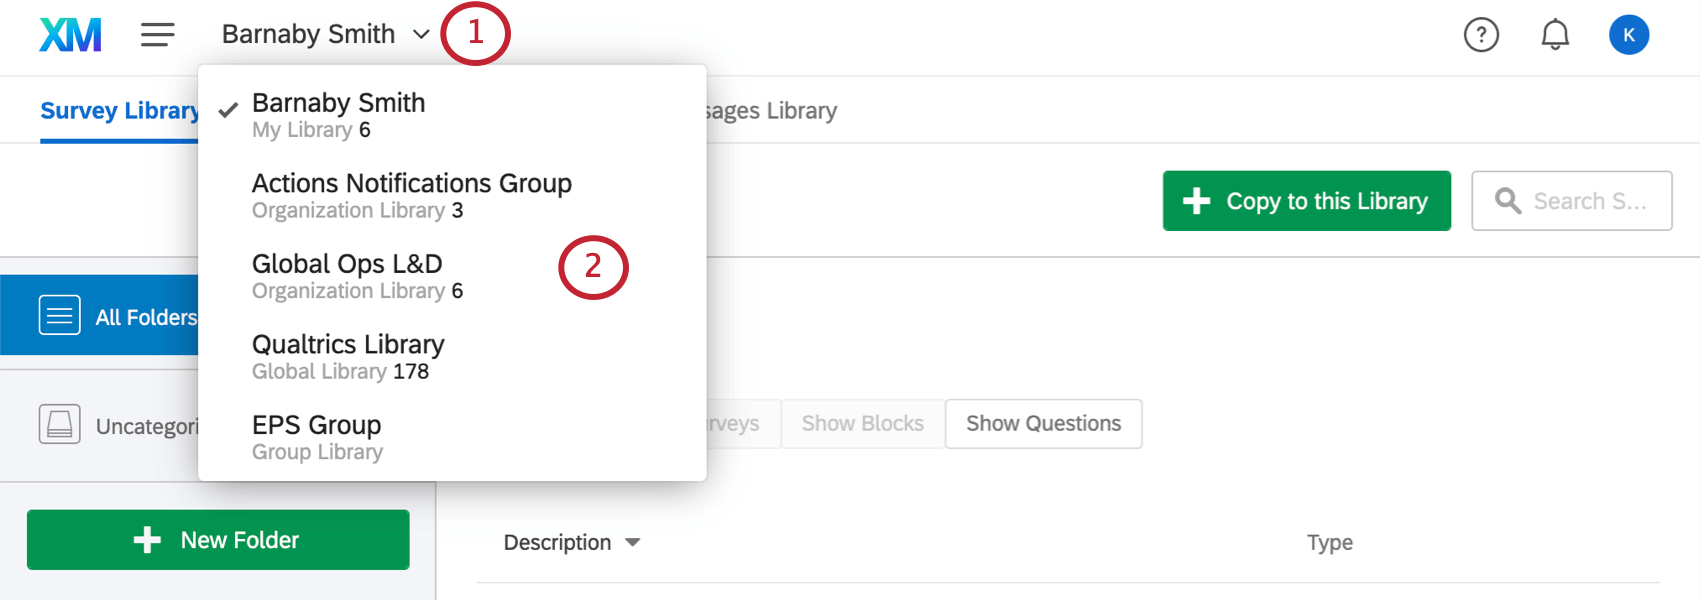 Personal and Group Libraries dropdown in top-left corner of Library Page